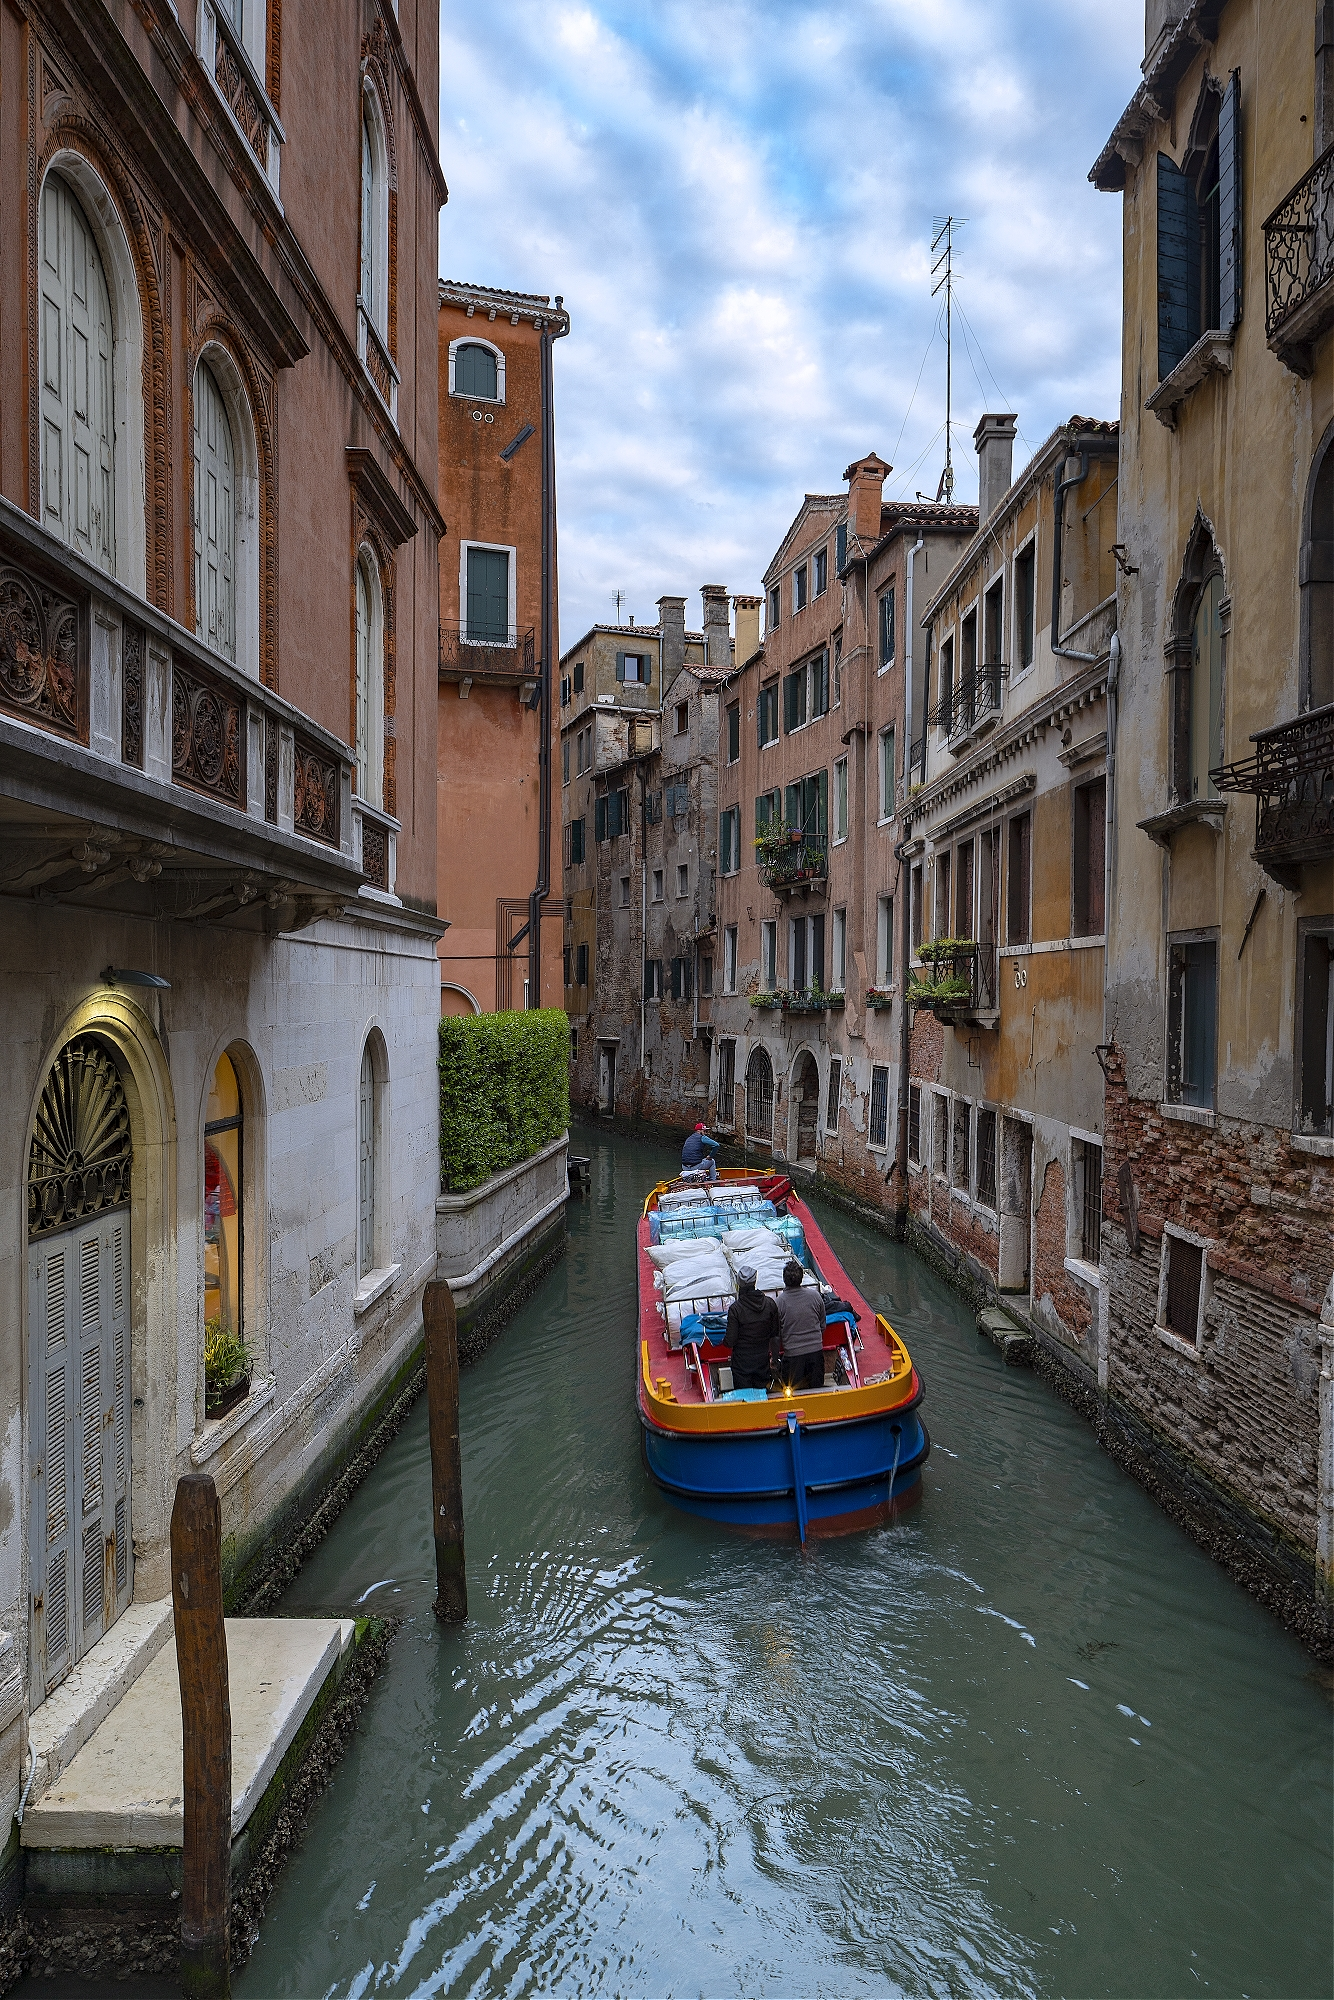 Delivering the laundry for the hotels in Venice